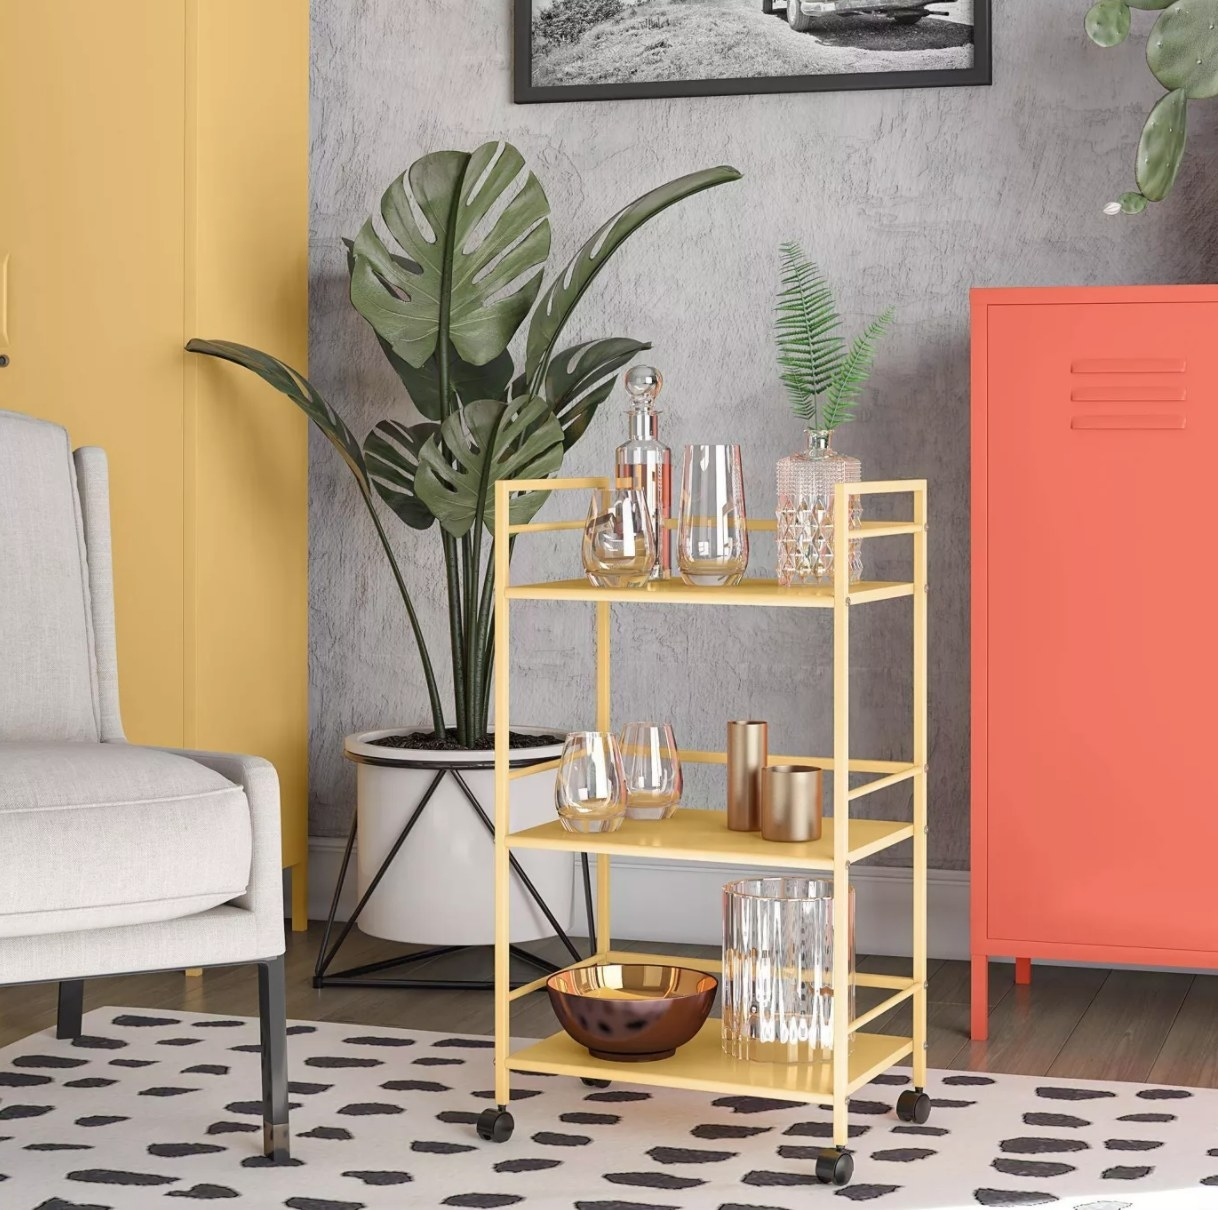 The yellow metal bar cart